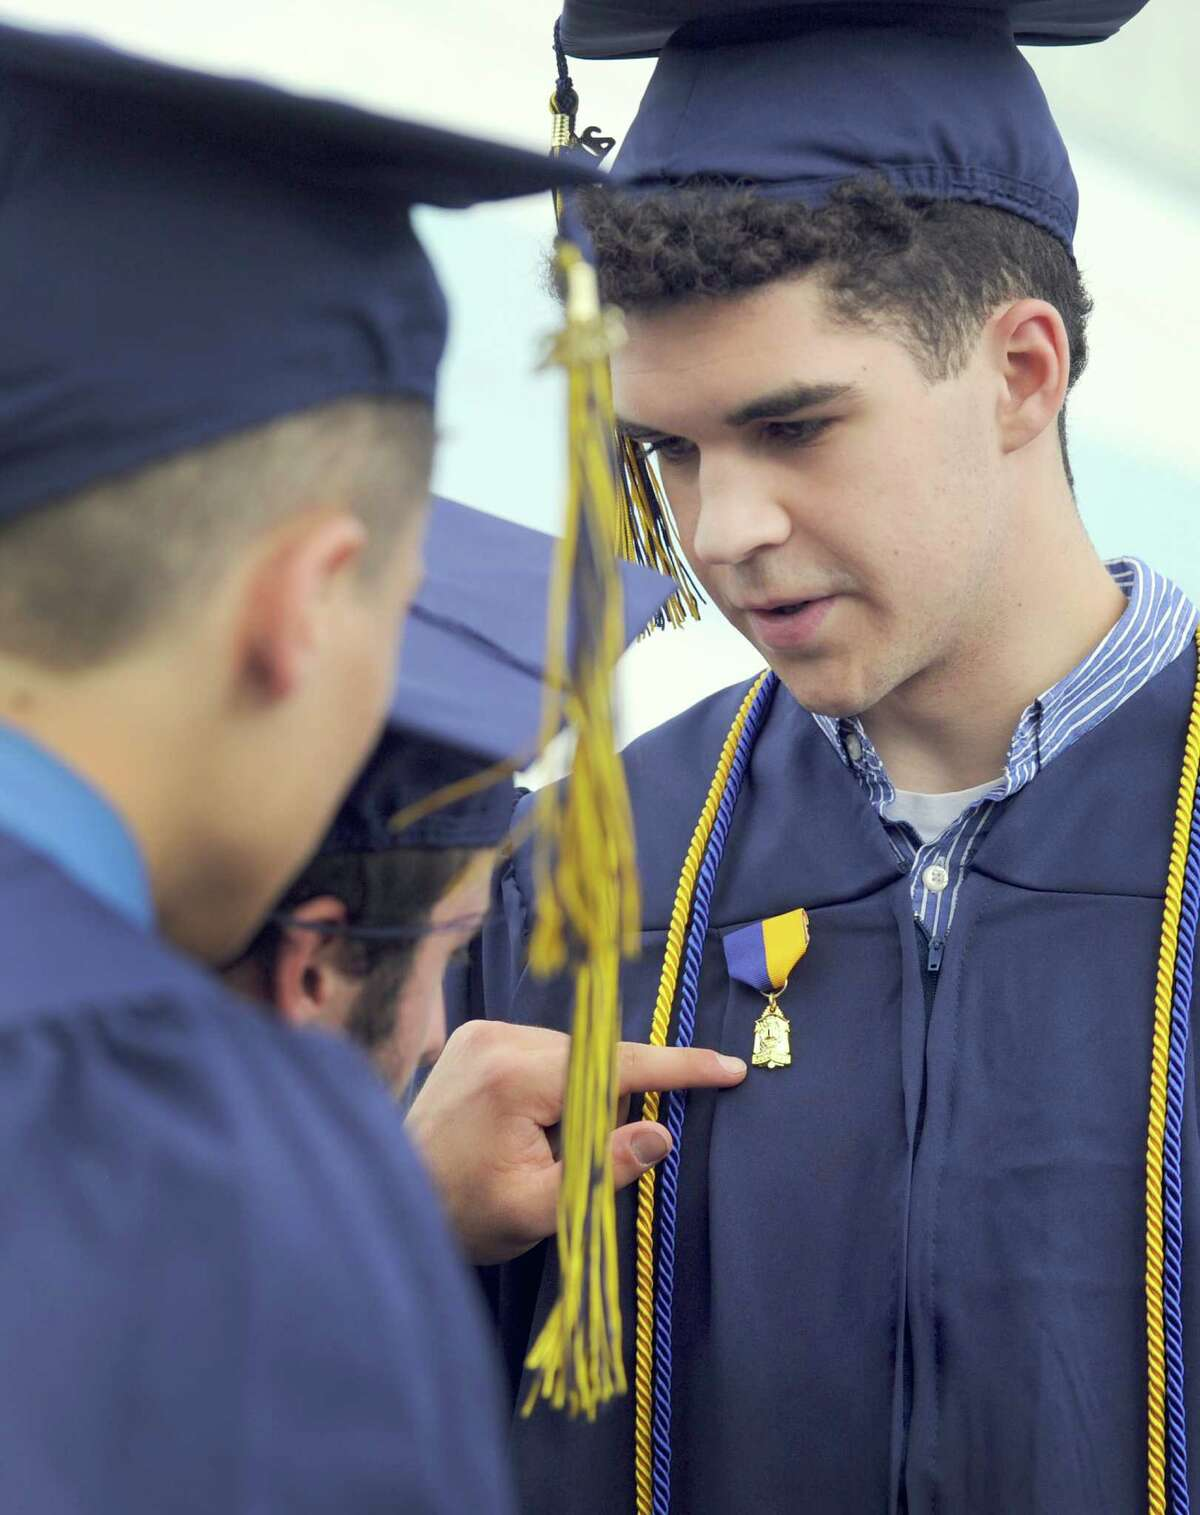 Nick Lopez, 17, shows his friends his World Lanquage Department Medal before the start of graduation Saturday. Brookfield High School holds its graduation ceremony Saturday, June 18, 2016, at the O'Neill Center at Western Connecticut State Universaity in Danbury.